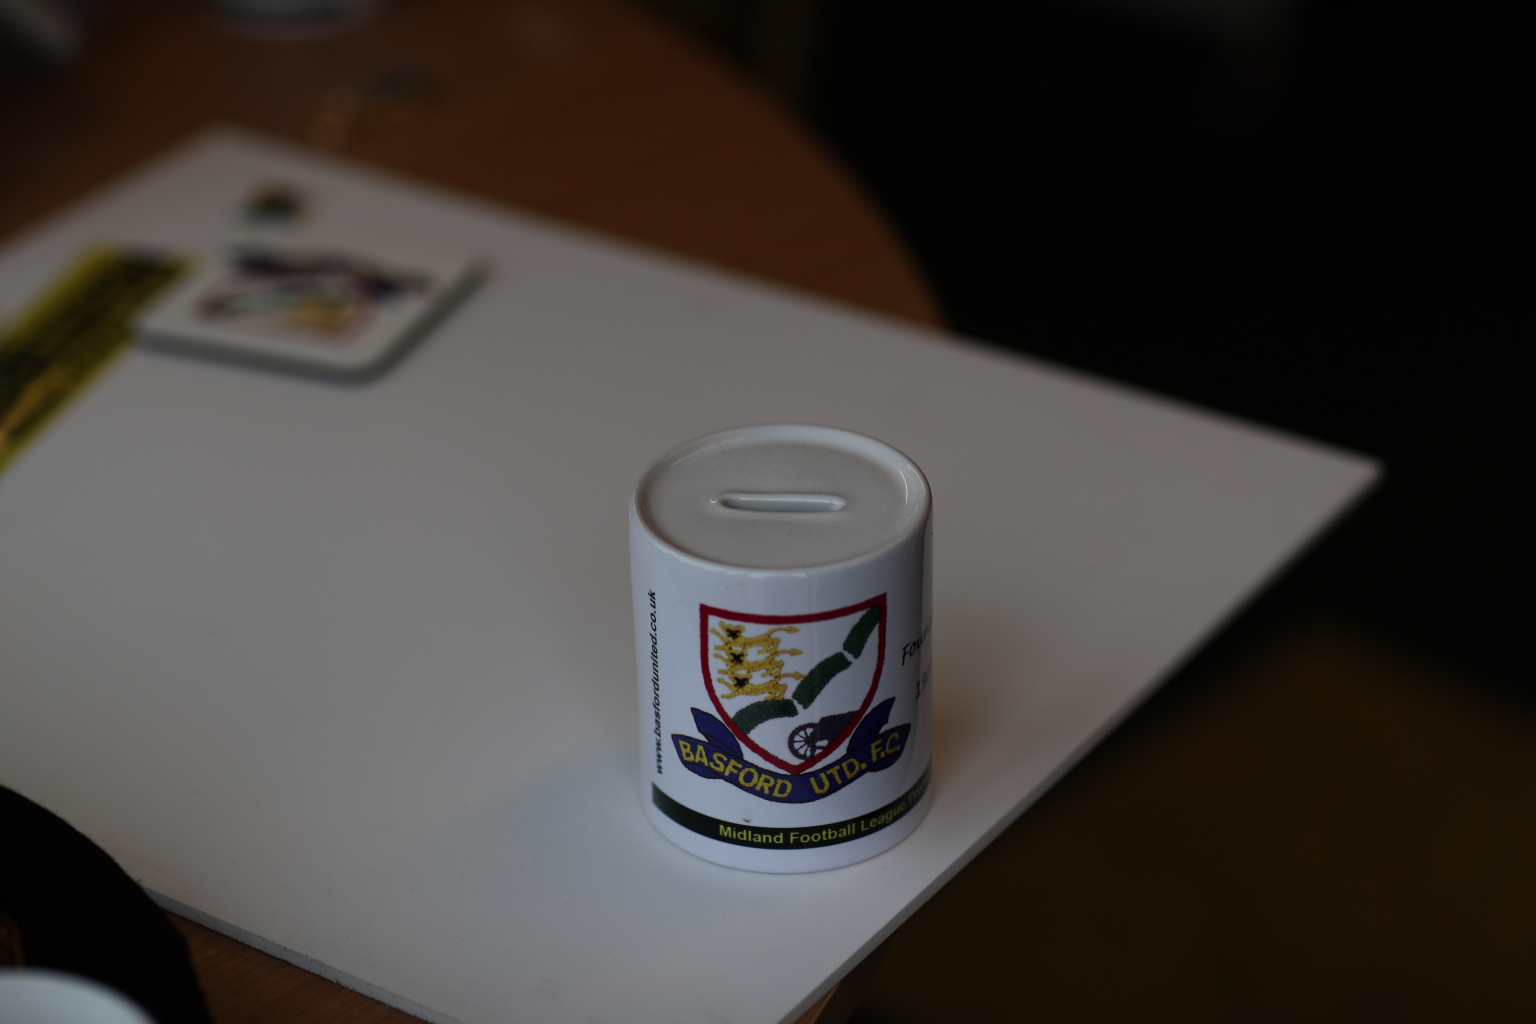 Image: Bespoke Money Tins